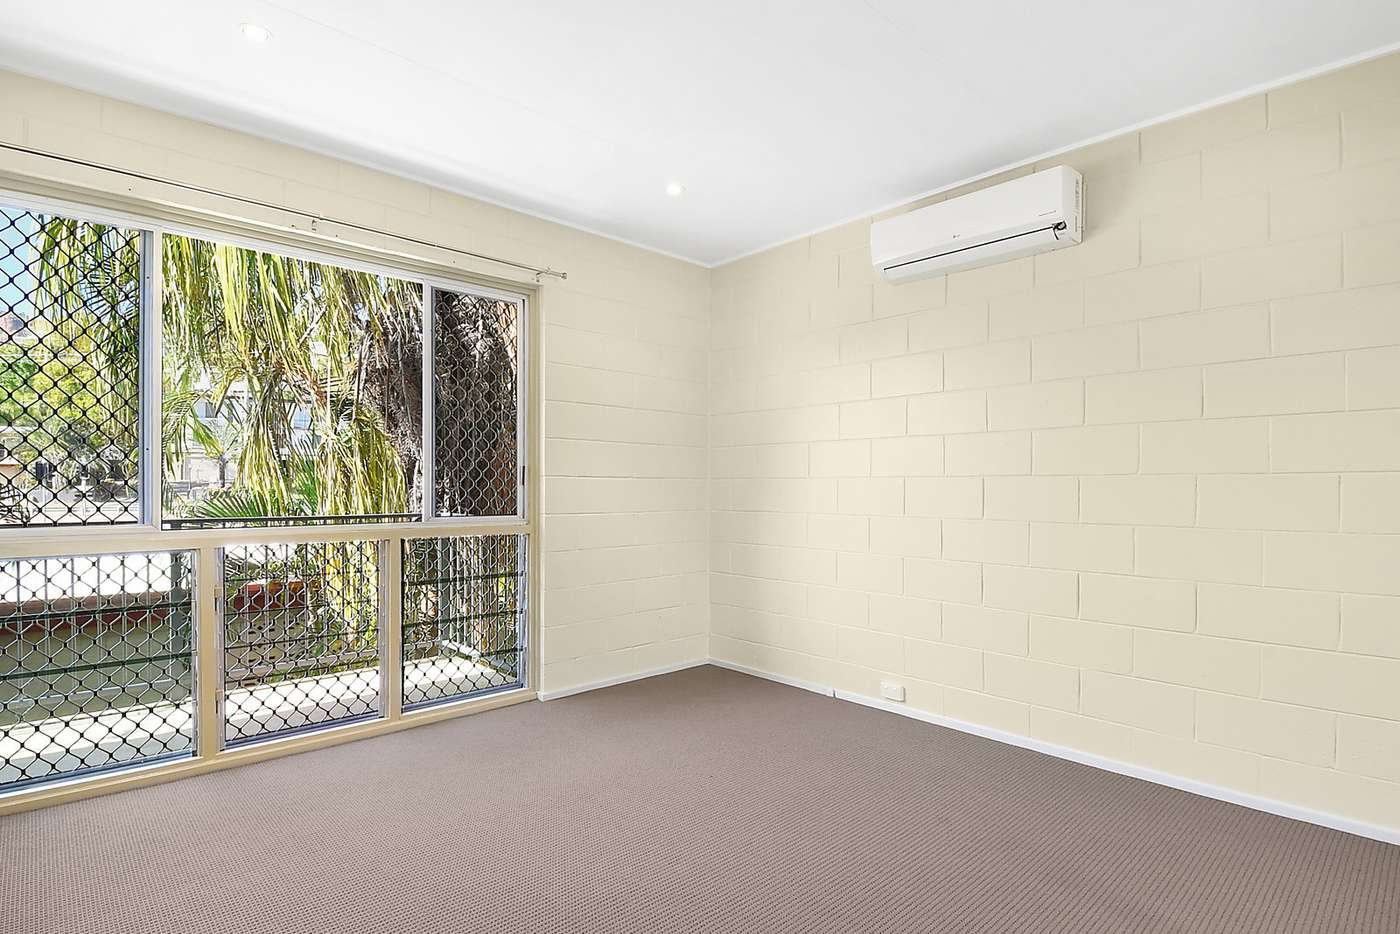 Fourth view of Homely unit listing, 8/2 Howitt Street, North Ward QLD 4810